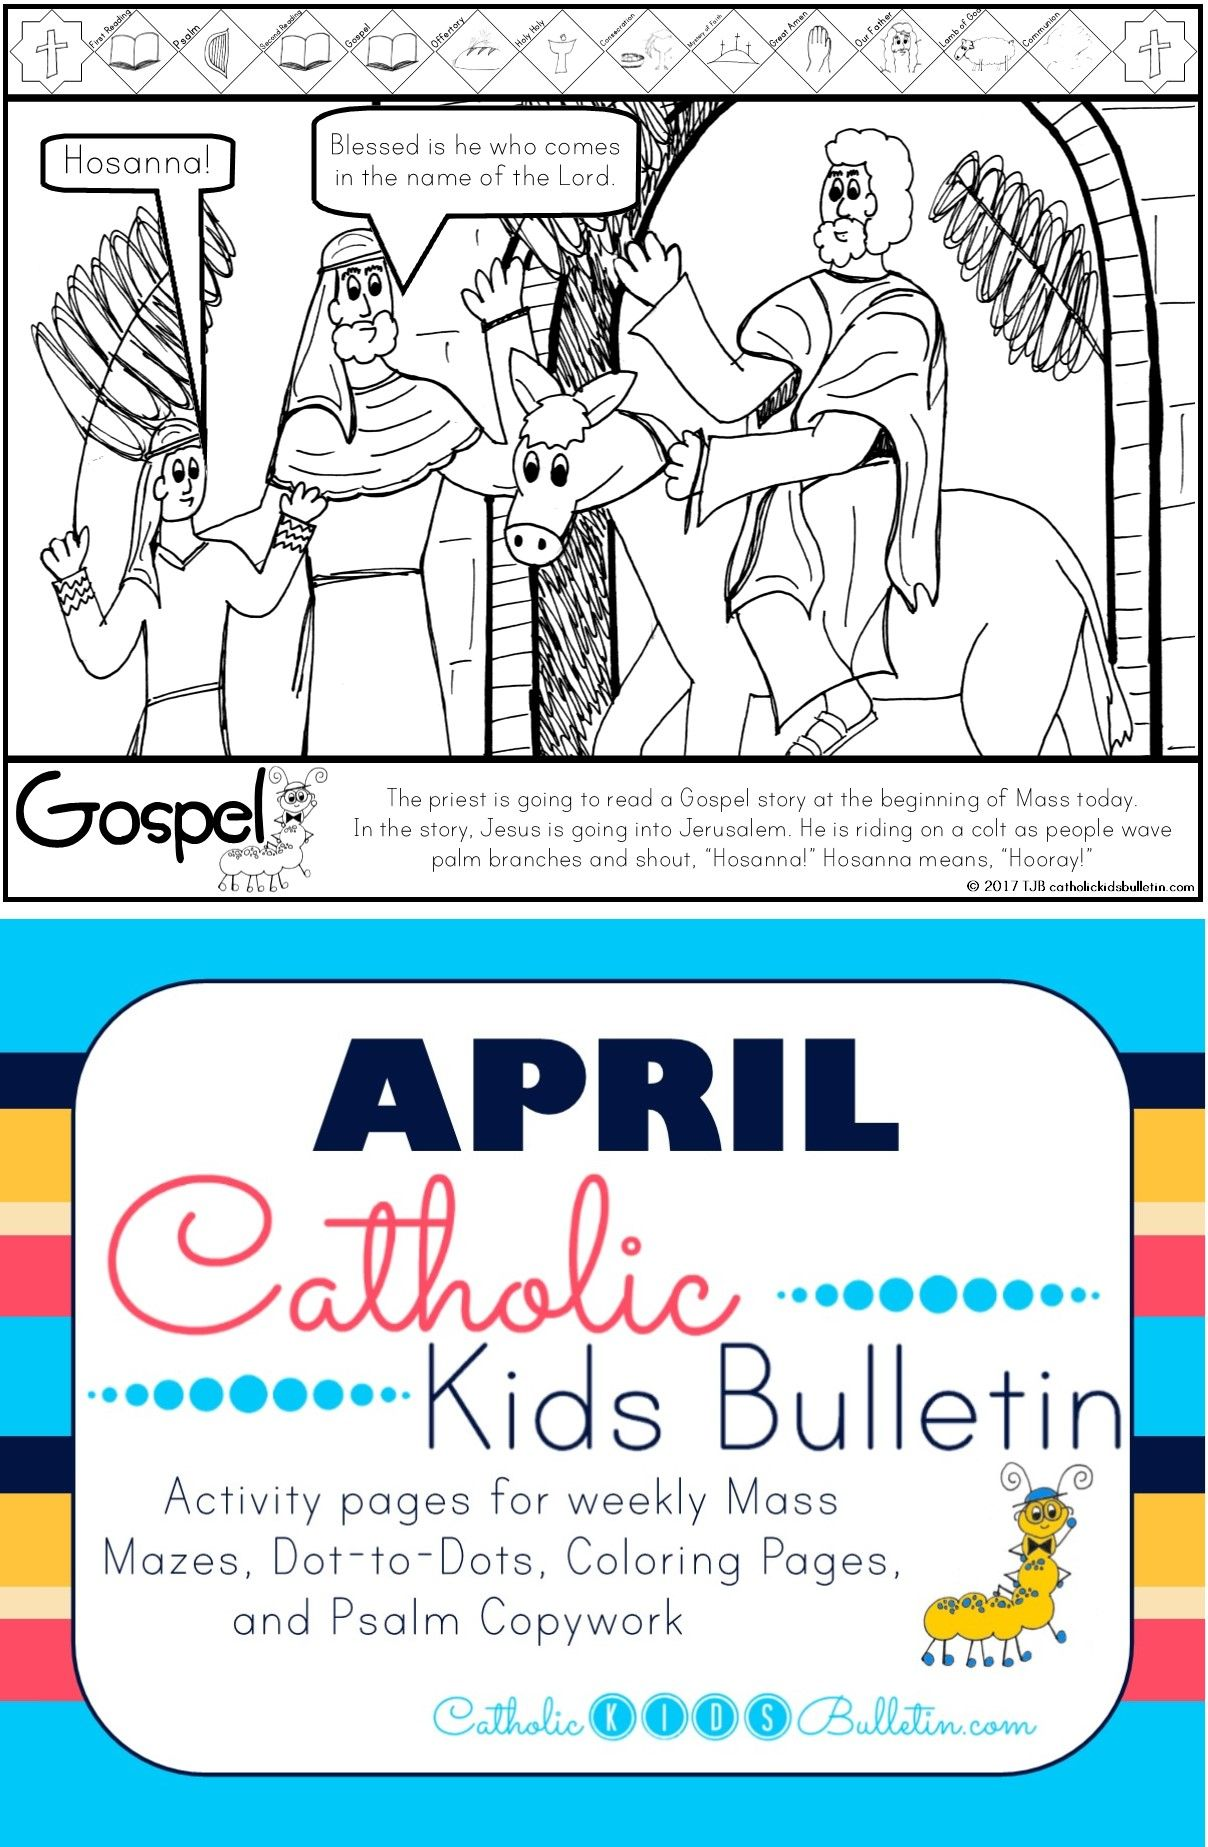 Check Out These Awesome Catholic Mass Bulletins For Kids